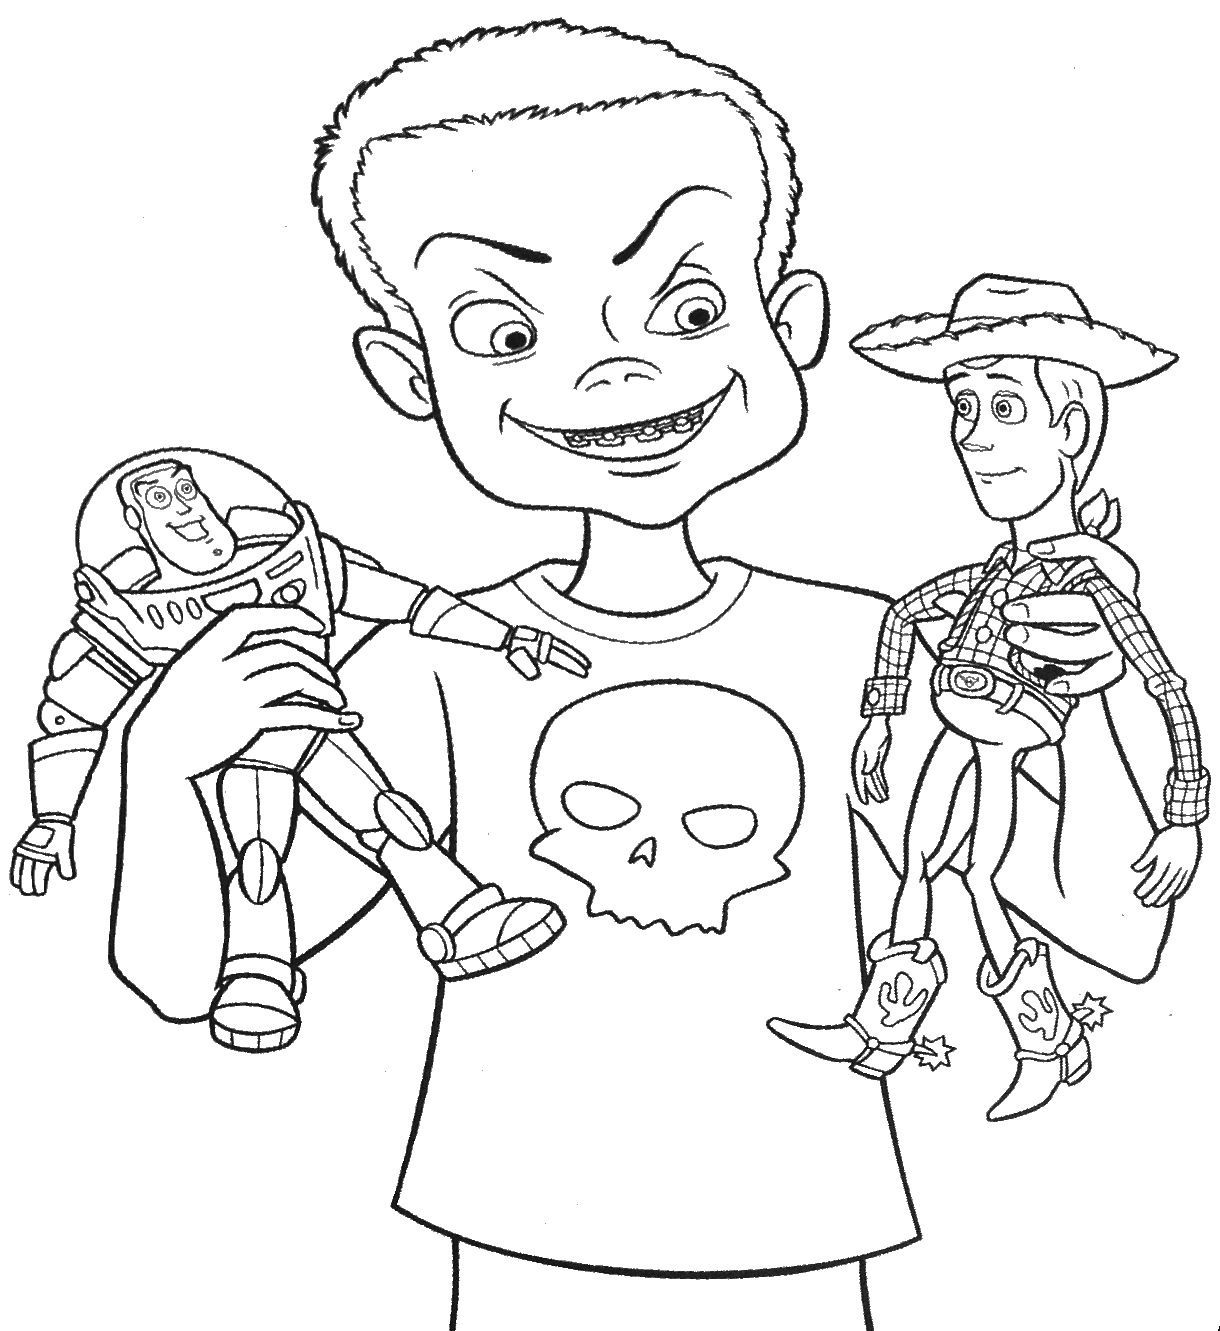 Easy Toy Story 3 Jessie Coloring Pages Sogning